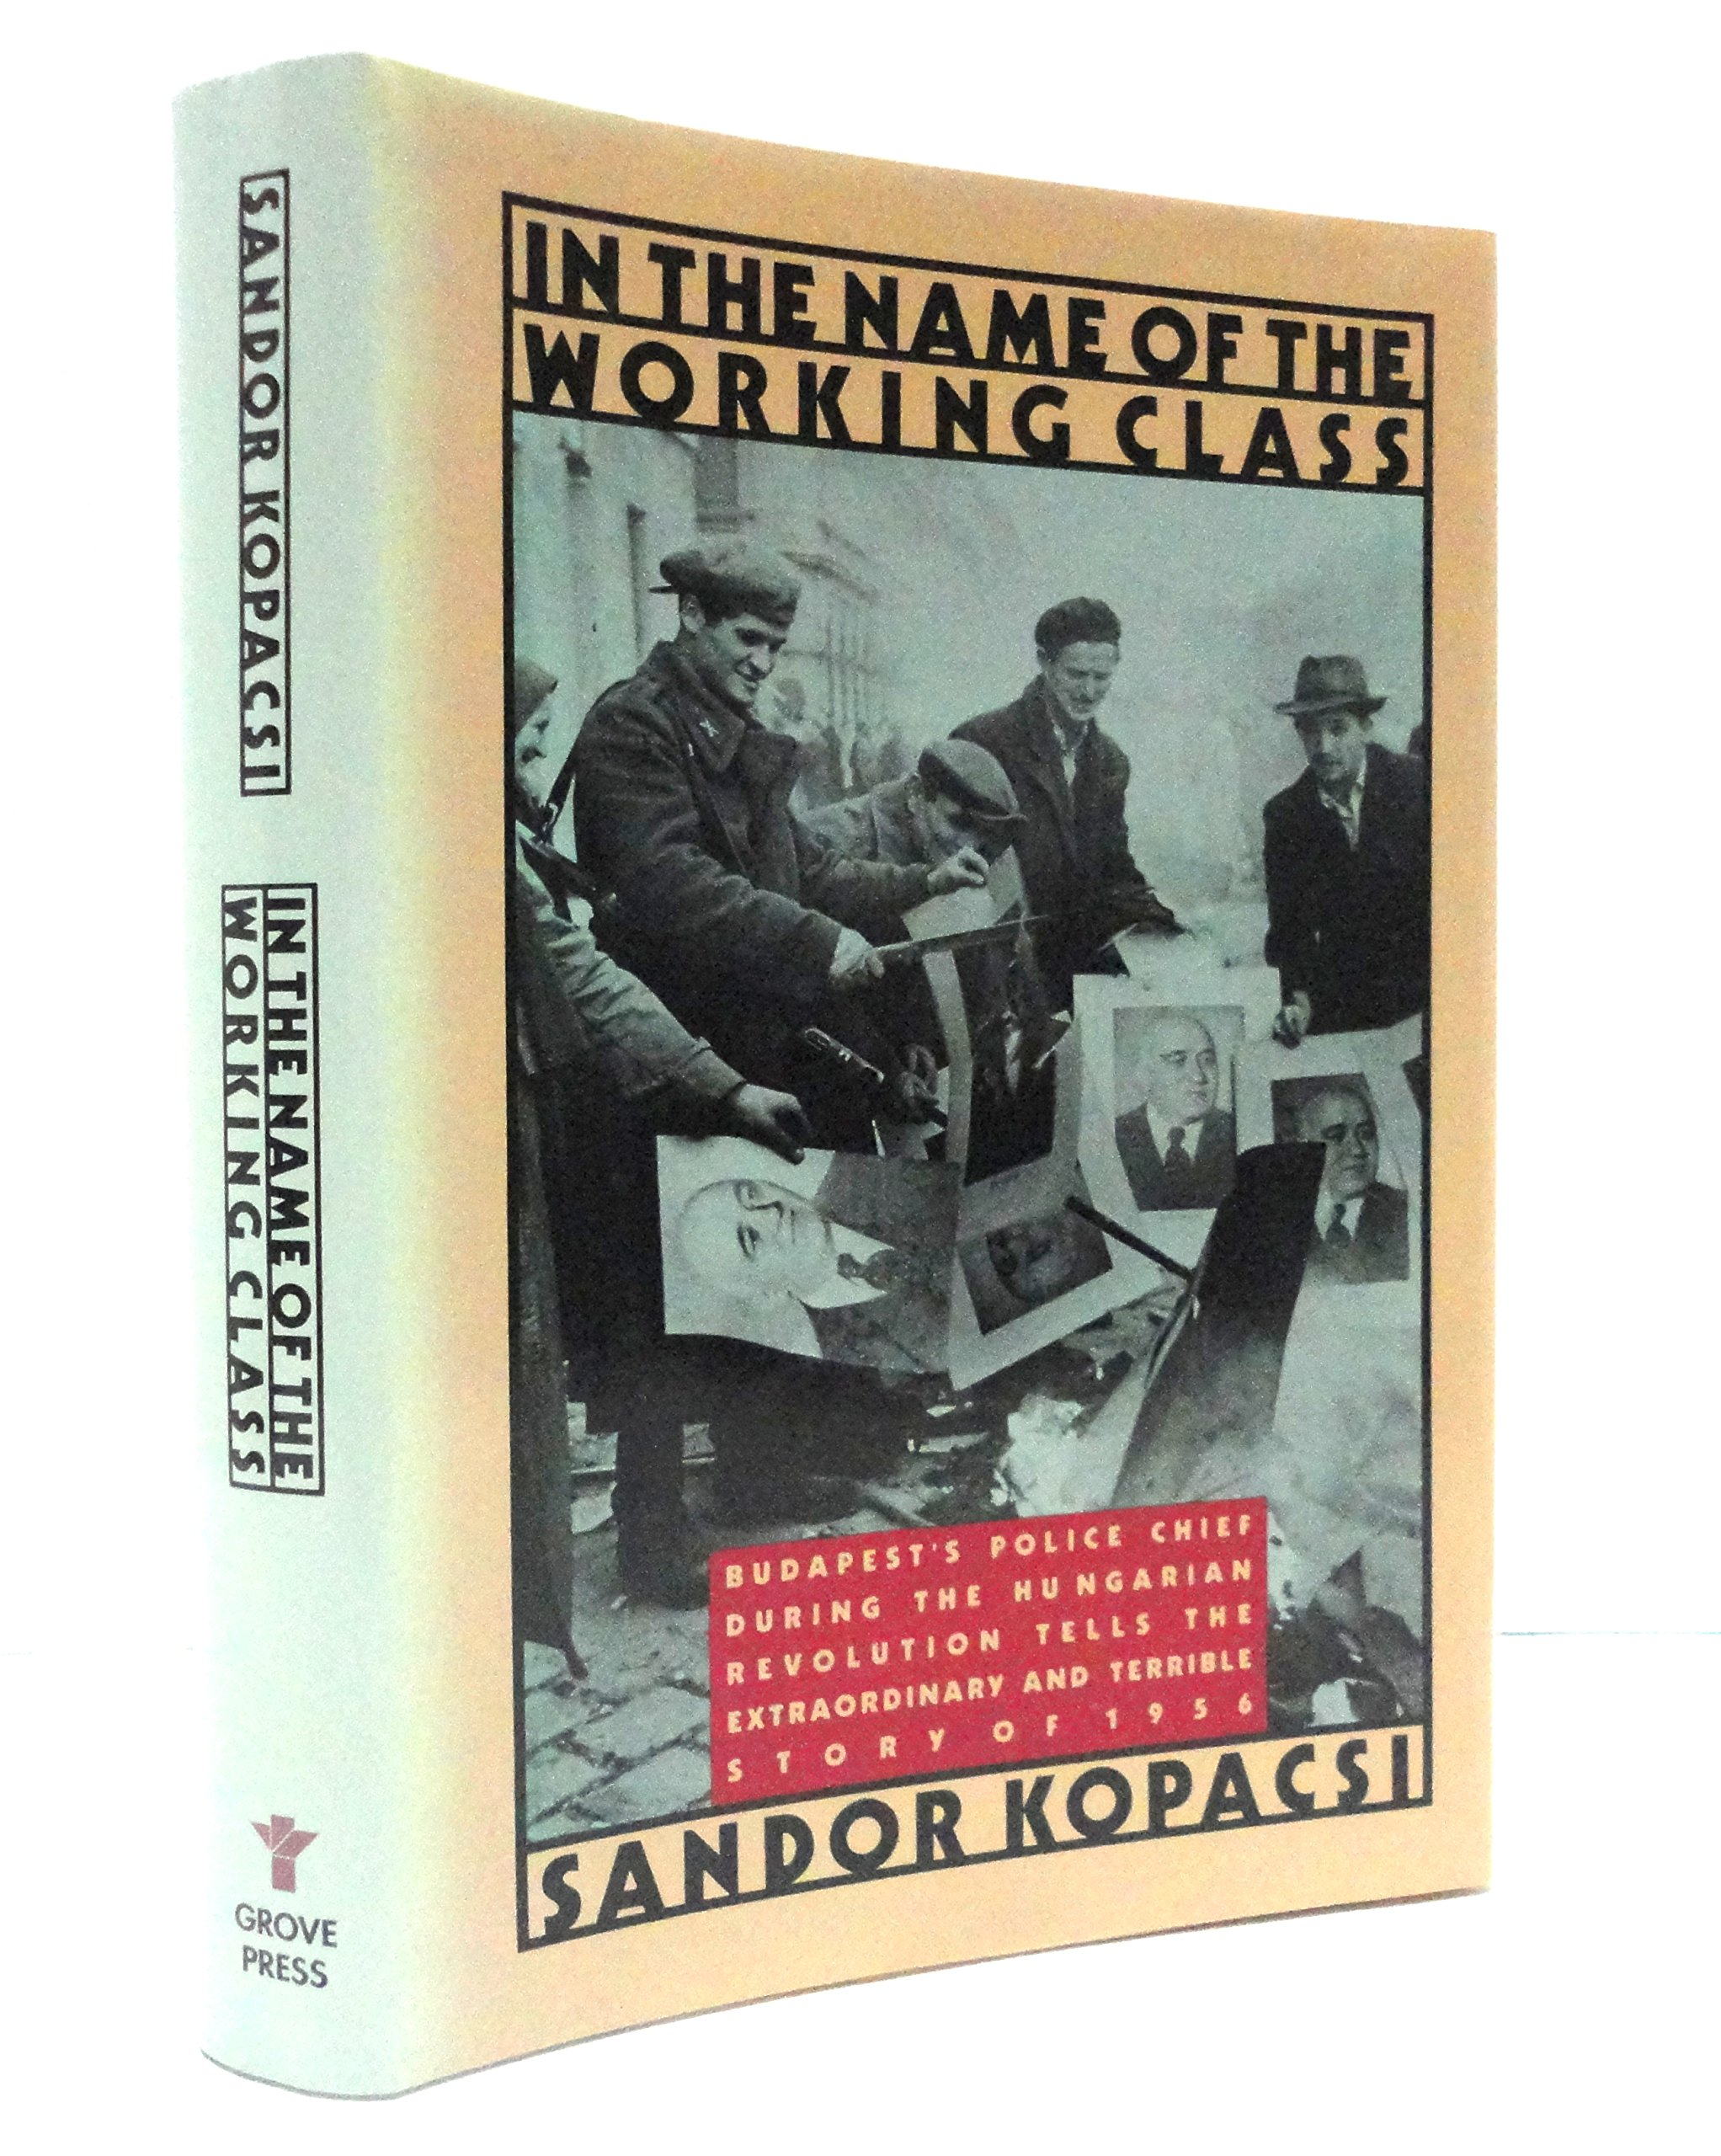 In the Name of the Working Class: The Inside Story of the Hungarian Revolution